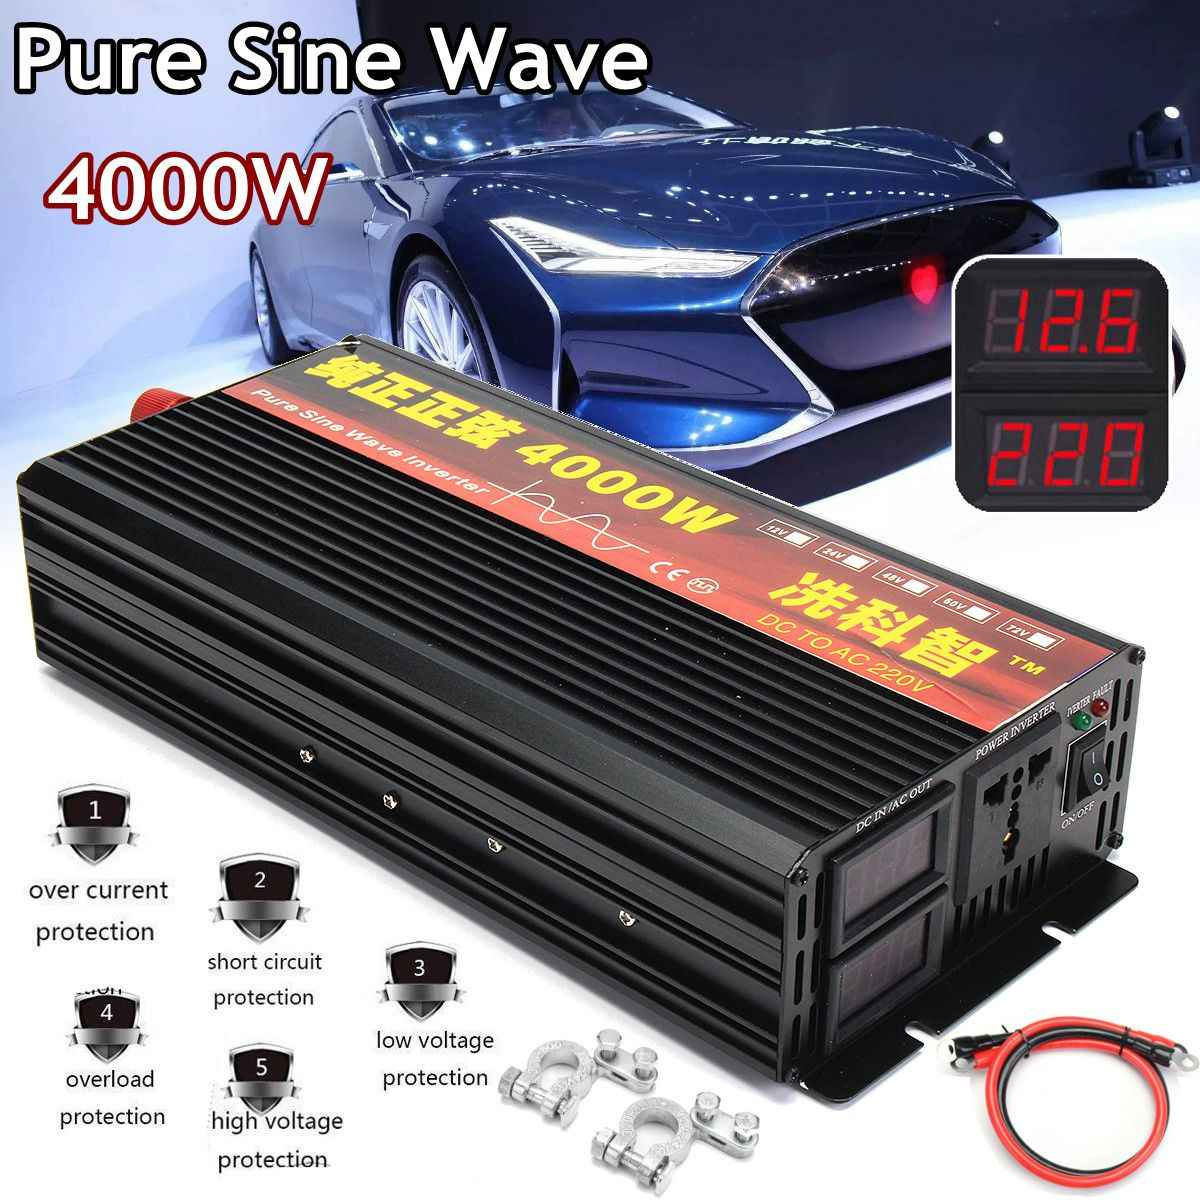 Power Pure Sine Wave Inverter Circuit Diagram 2017 2018 Best Cars Detail Feedback Questions About 12v 24v 220v 2000 3000 4000w Voltage Transformer